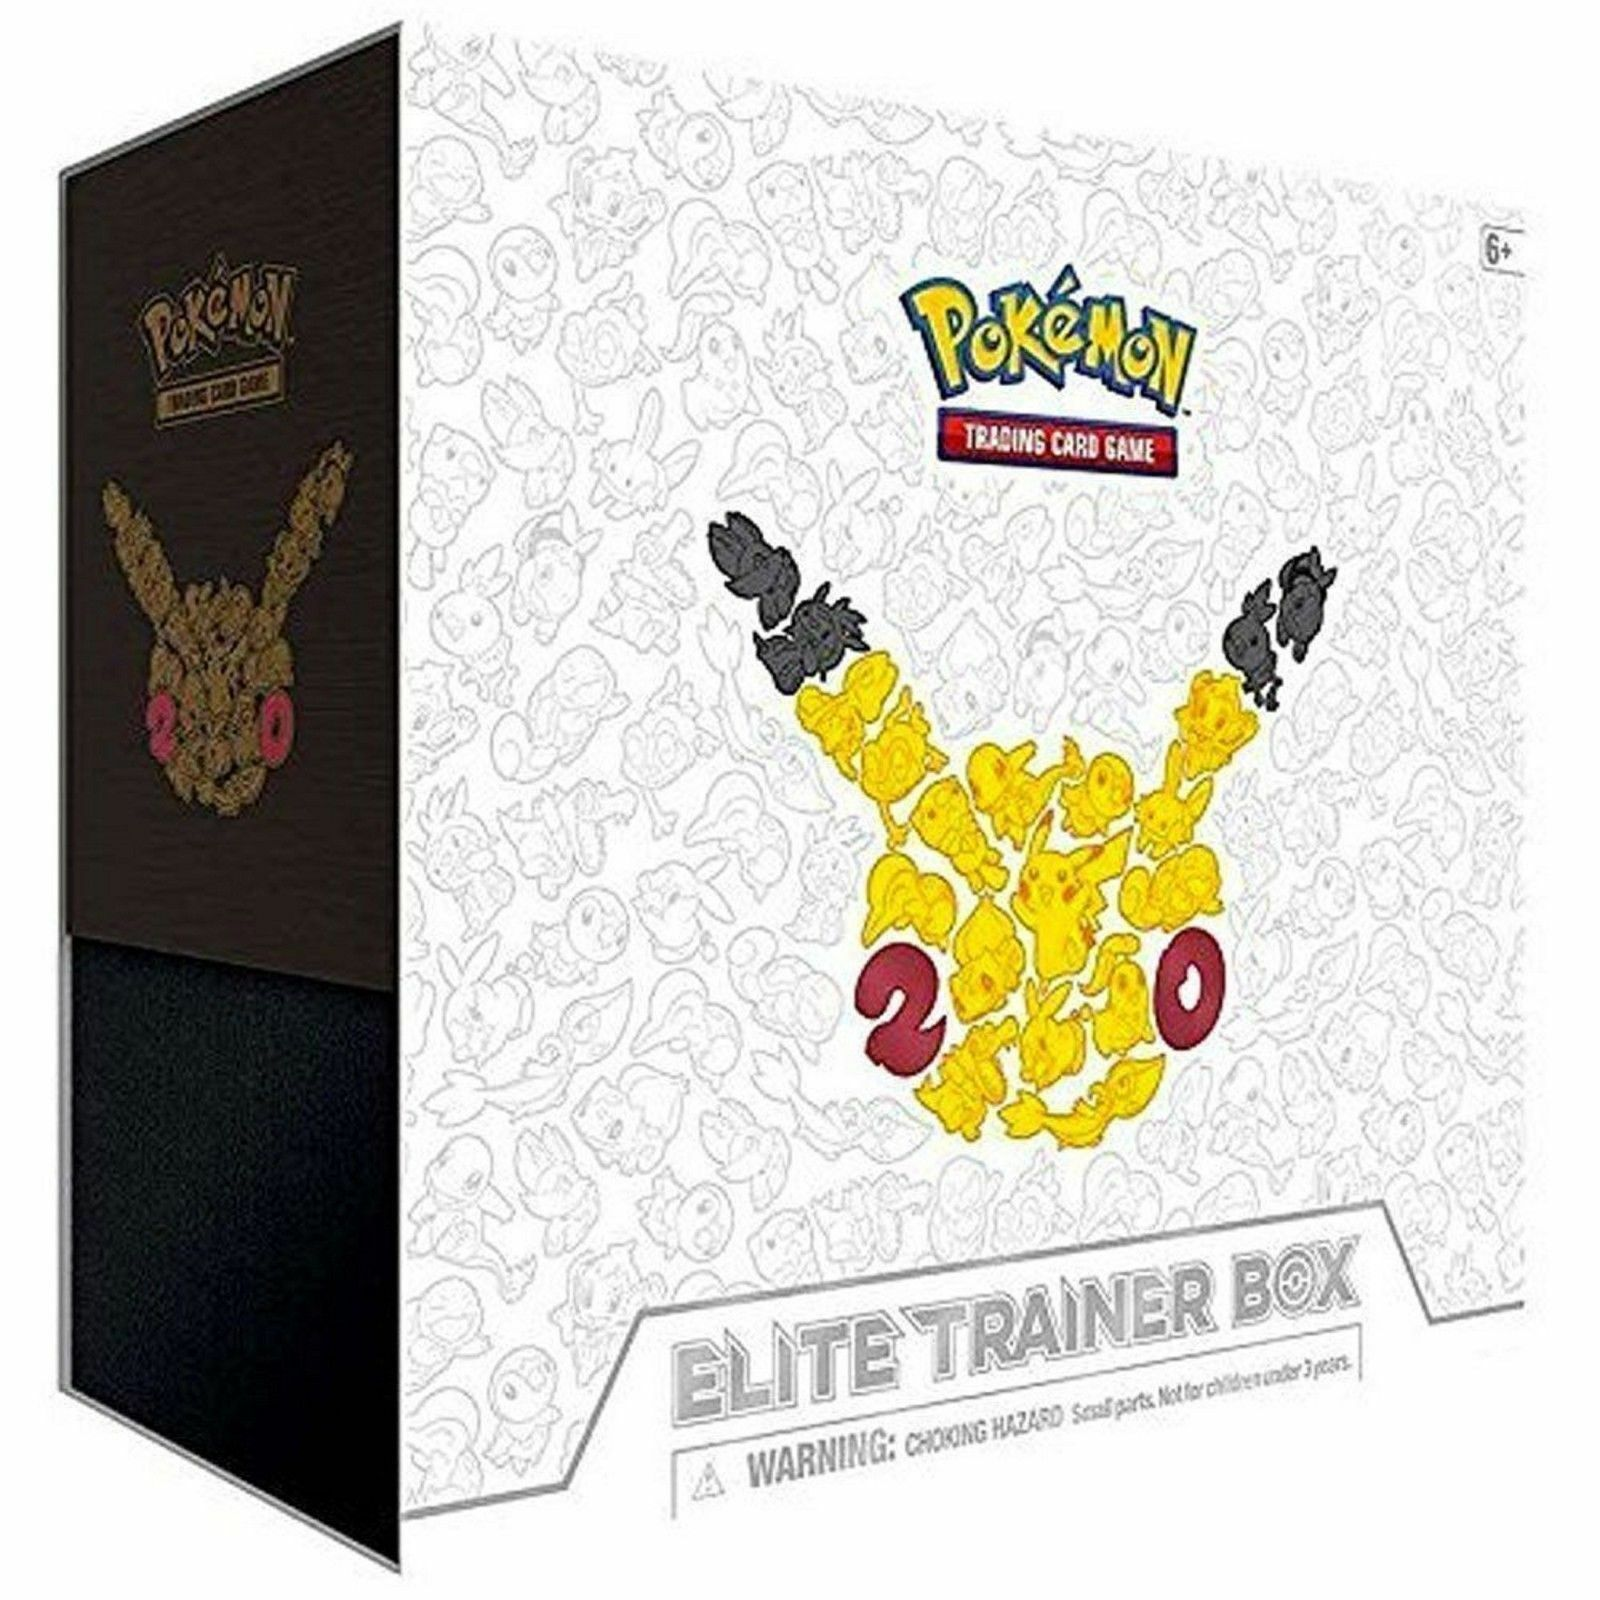 Pokemon Pokemon Pokemon TCG Generations Elite Trainer Box + Pikachu EX Red and bluee Collection 5c7581